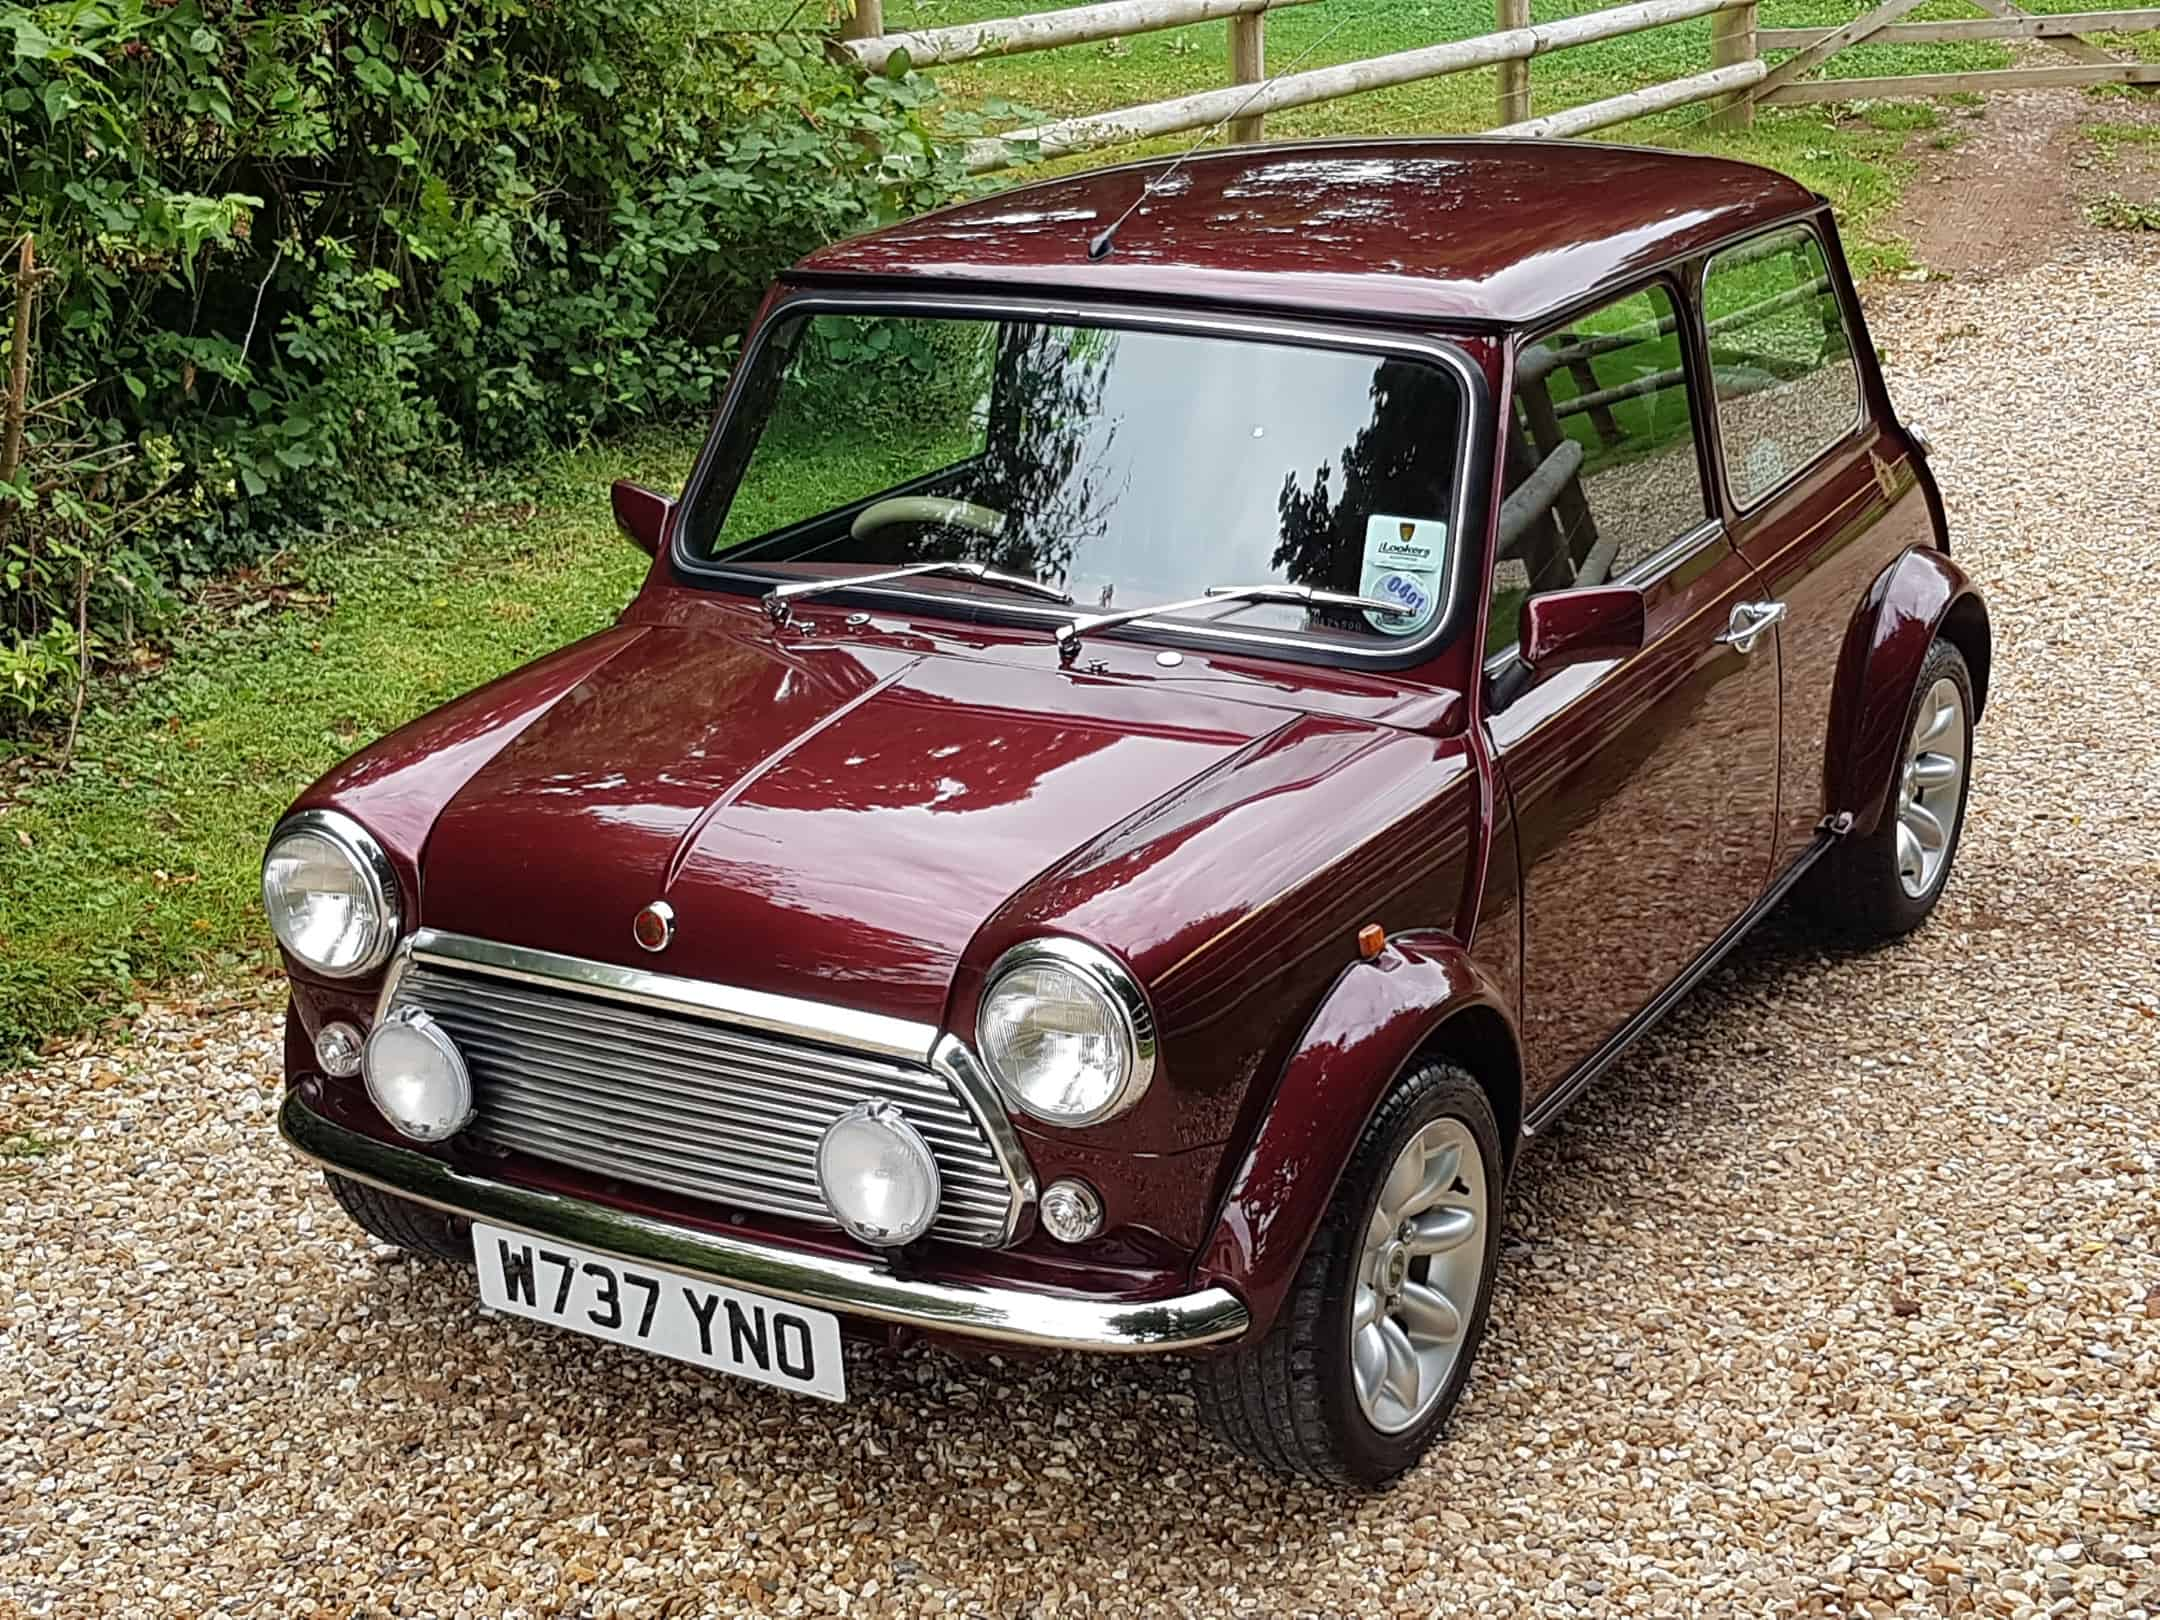 ** NOW SOLD ** 2000 Rover Mini Cooper 40 LE